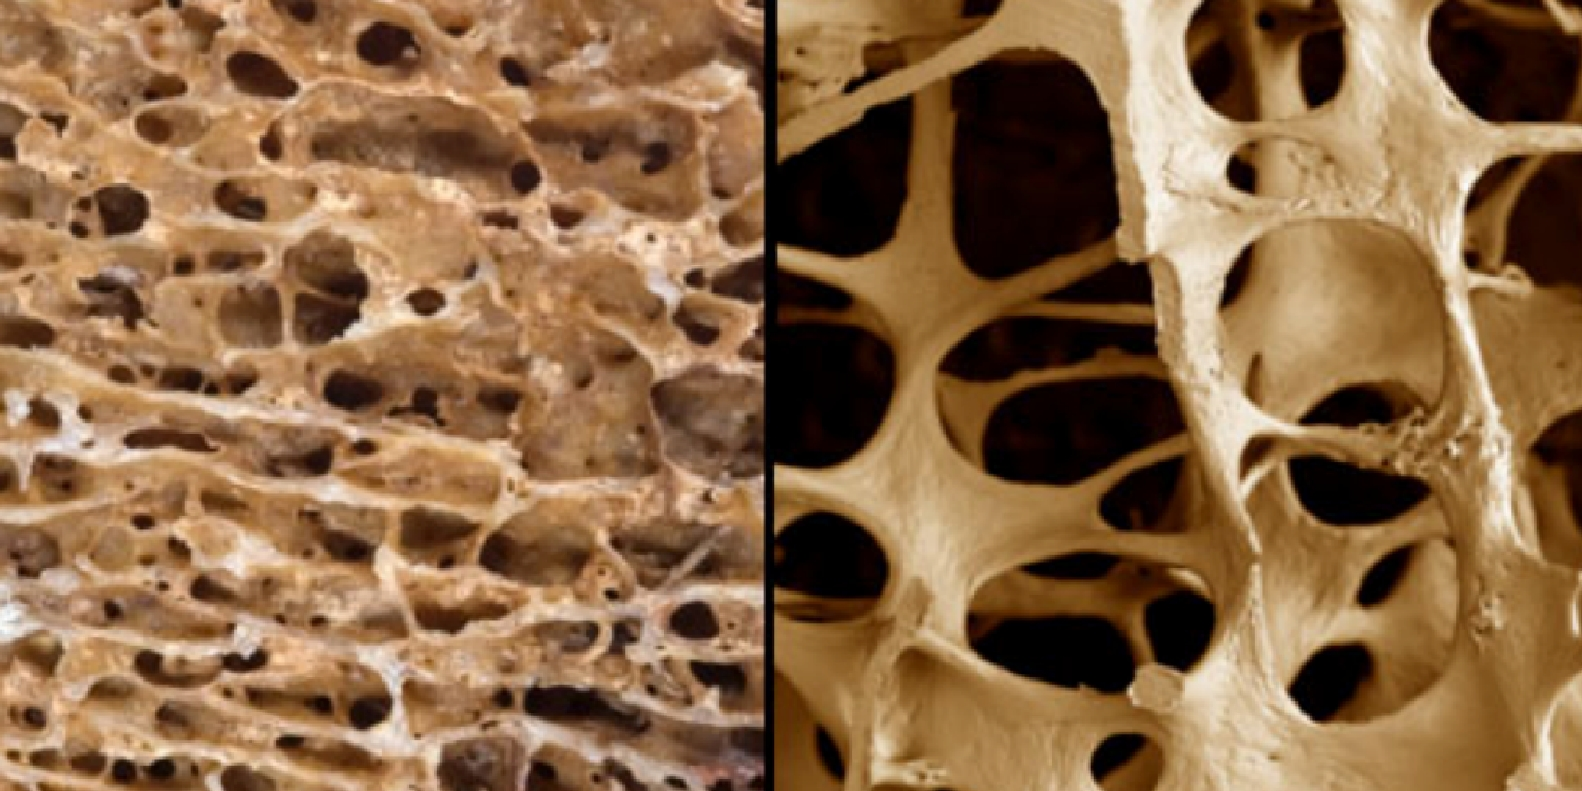 Left: normal bones. Right: bones with osteoporosis